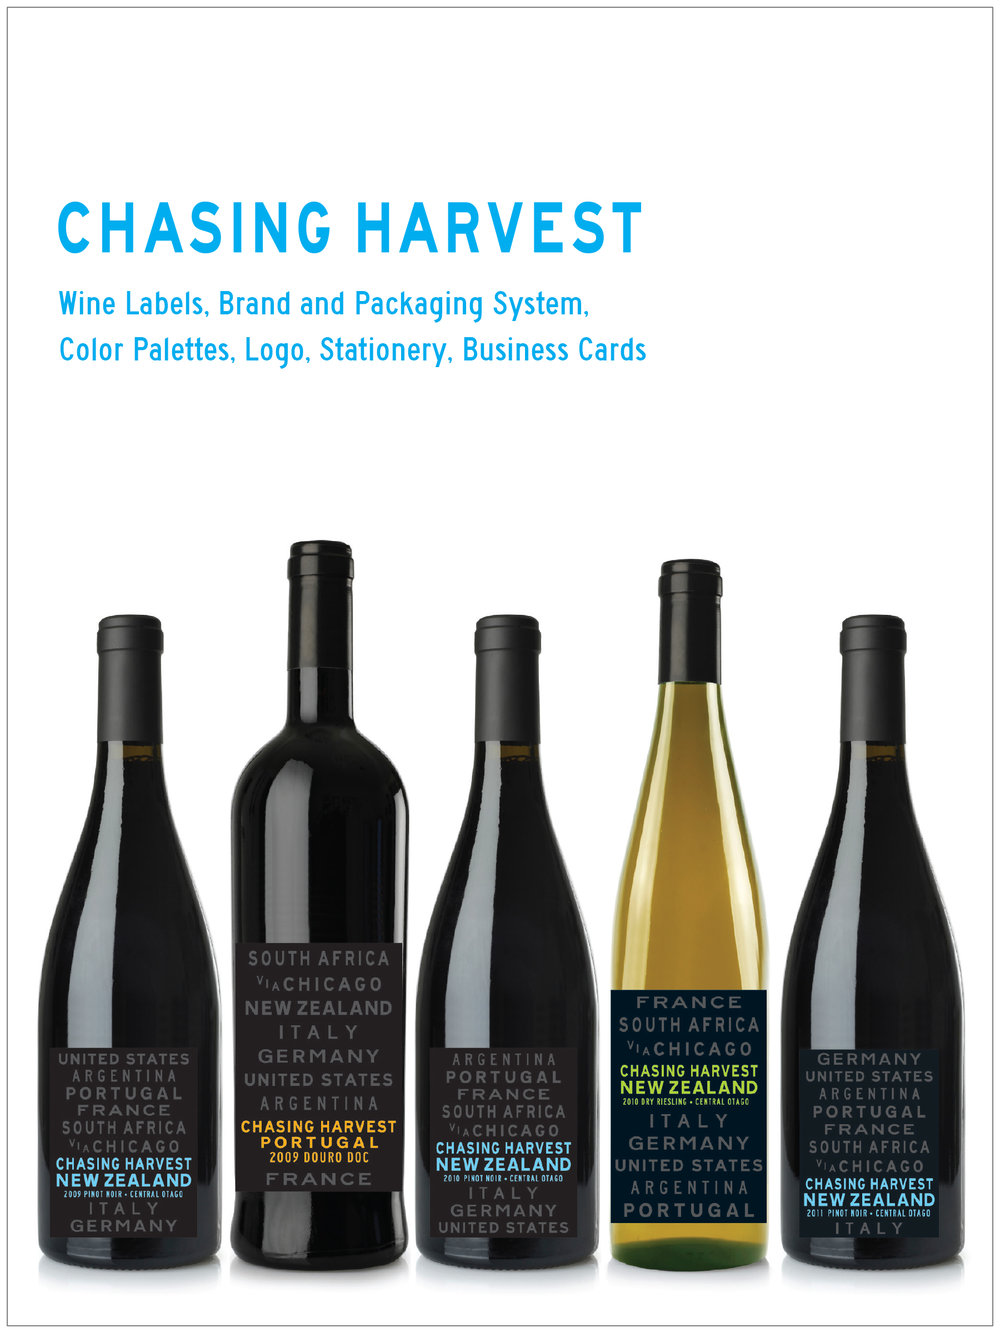 CHASING HARVEST Brand & Packaging Program